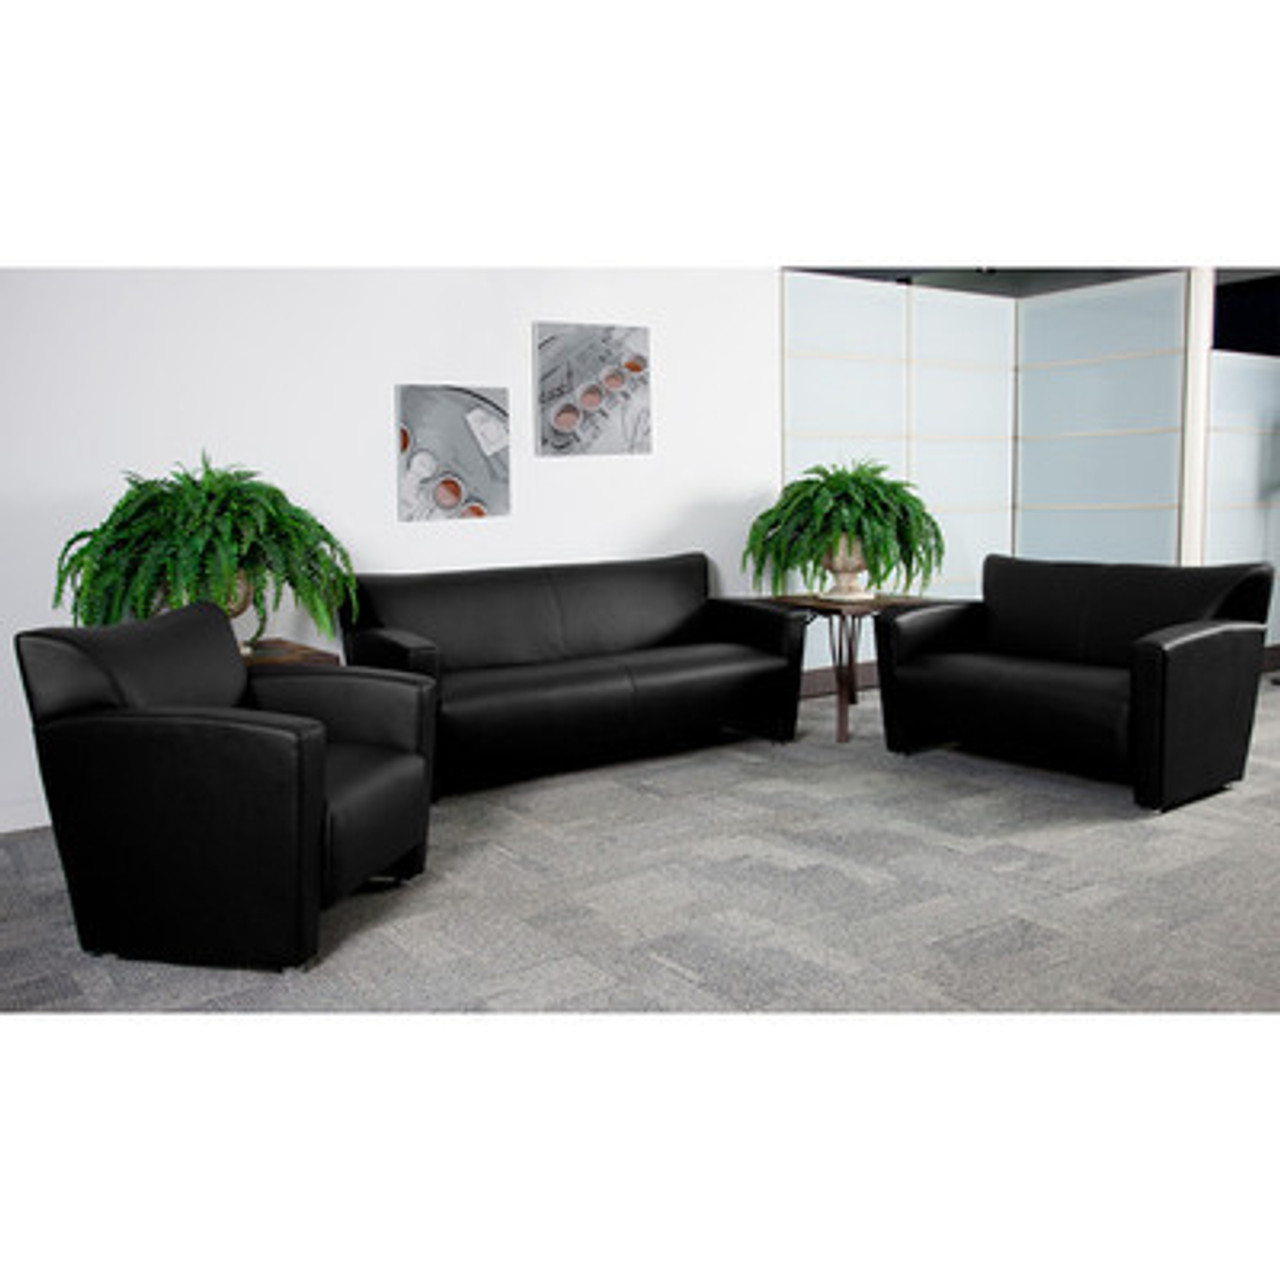 3pc Modern Leather Office Reception Sofa Set, FF-0428-12-S1